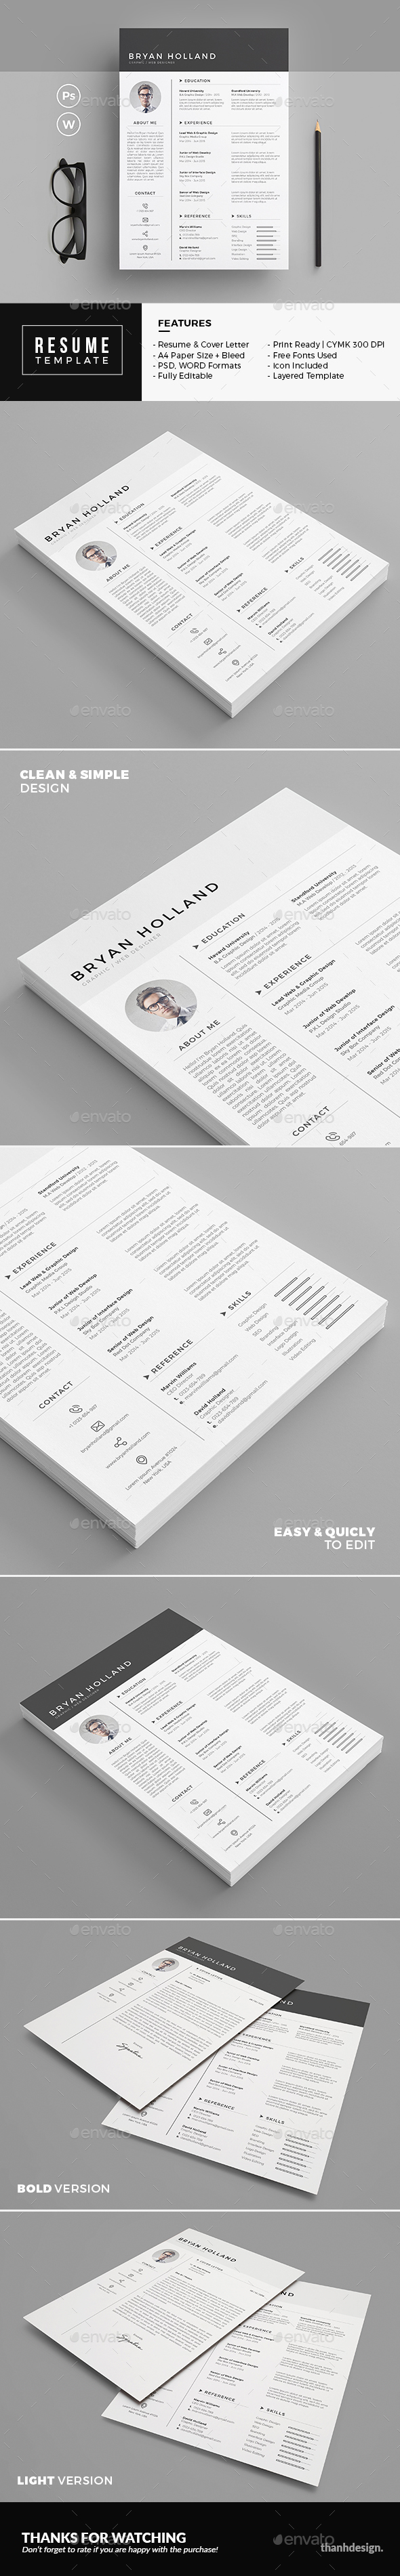 resume builder software templates writing easy thanks download resume